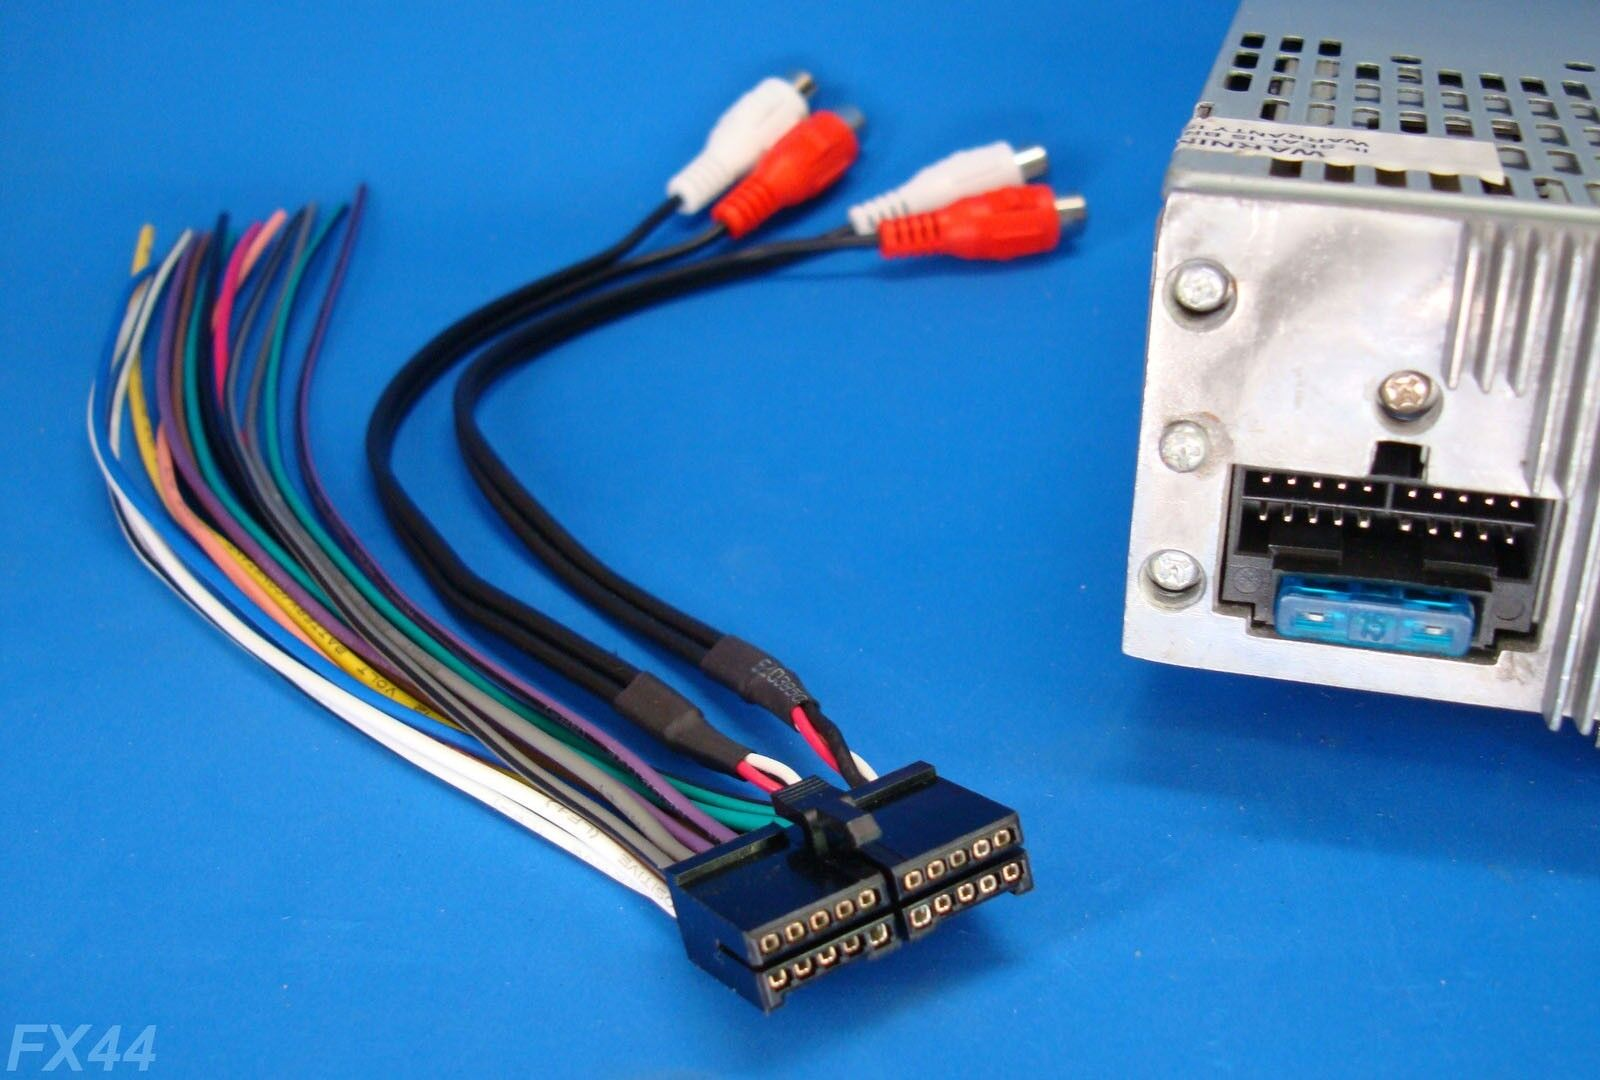 s l1600 xo vision 20 pin radio wire harness stereo power plug back clip xod1752bt wiring harness at honlapkeszites.co